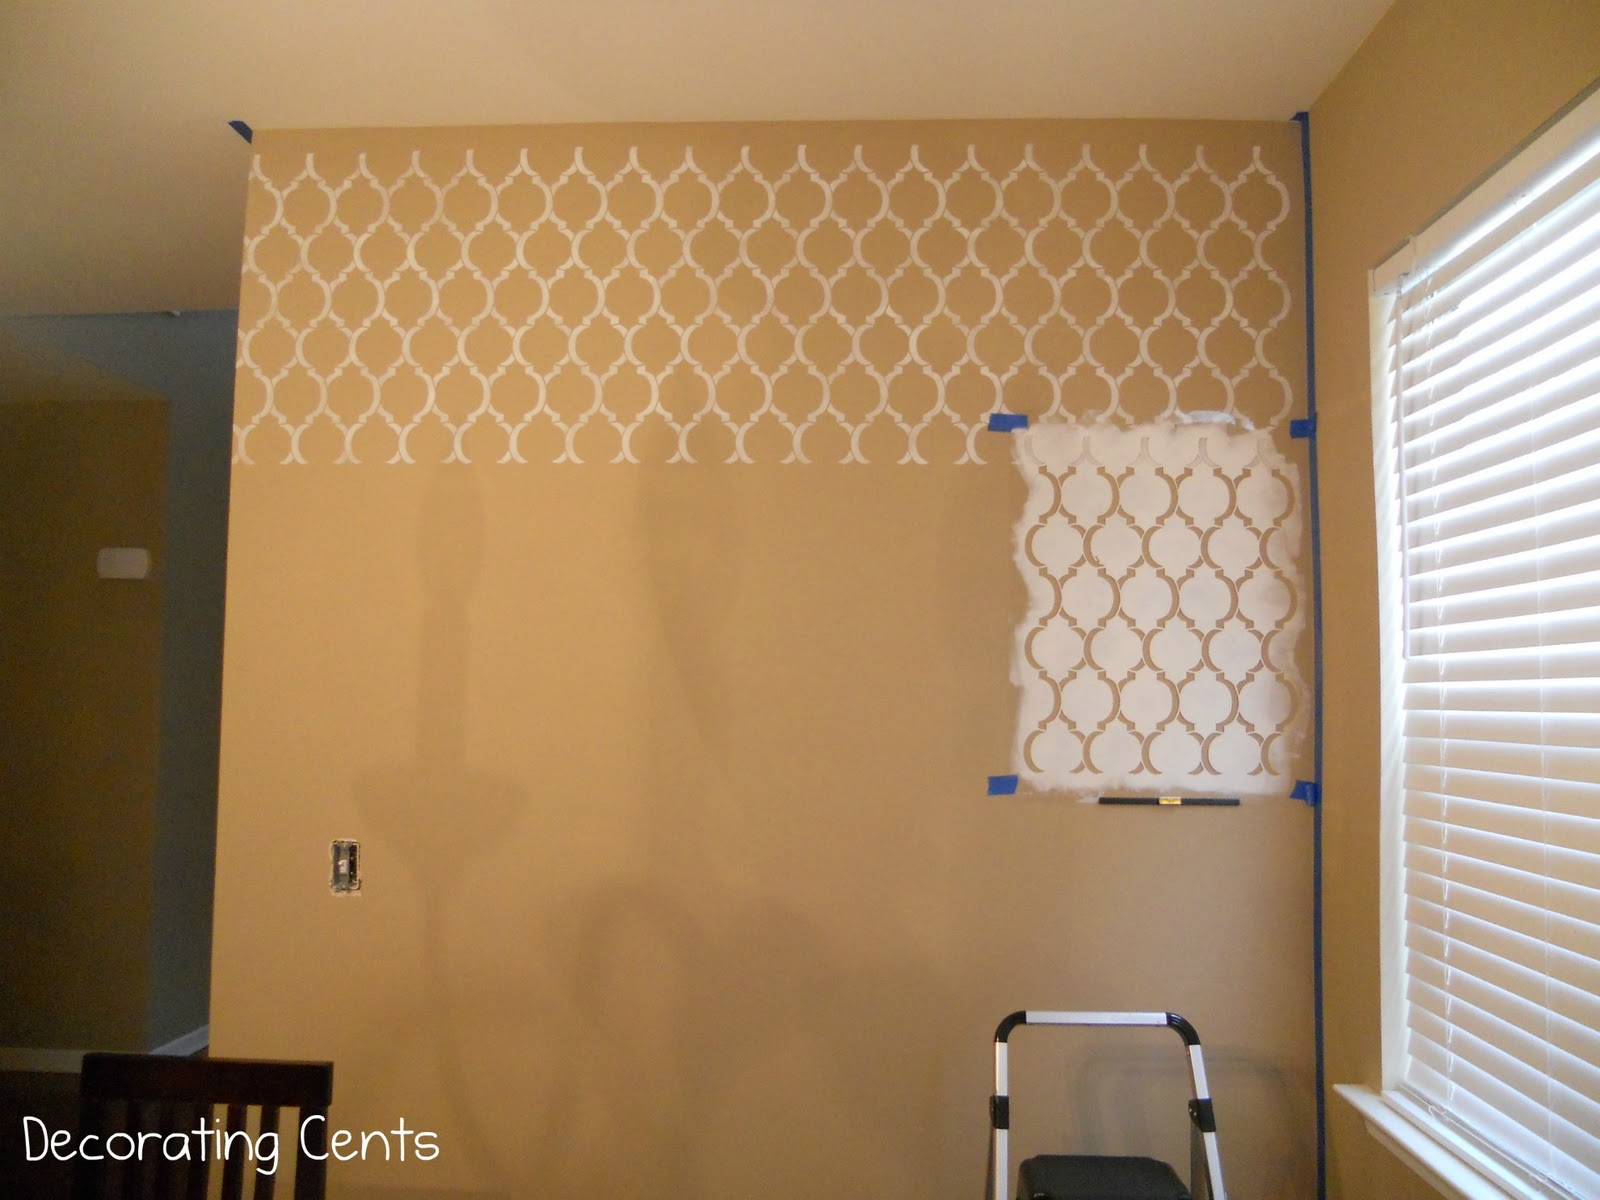 Decorating cents a stenciled wall - Stencil patterns for walls ...